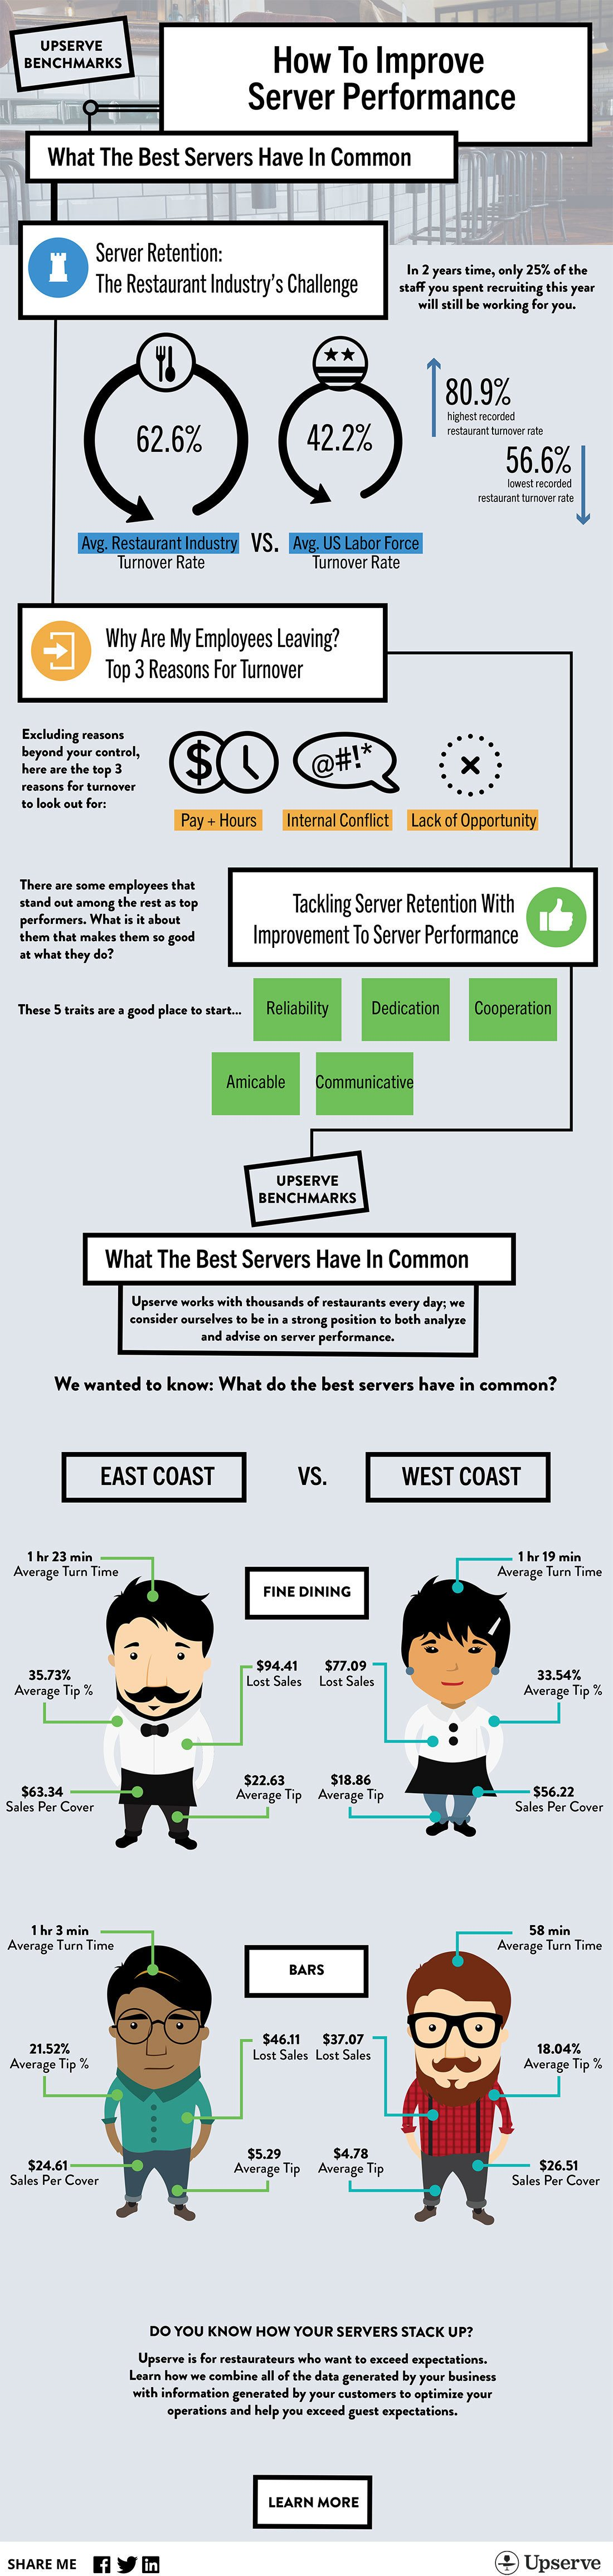 What Do The Best Servers Have In Common?